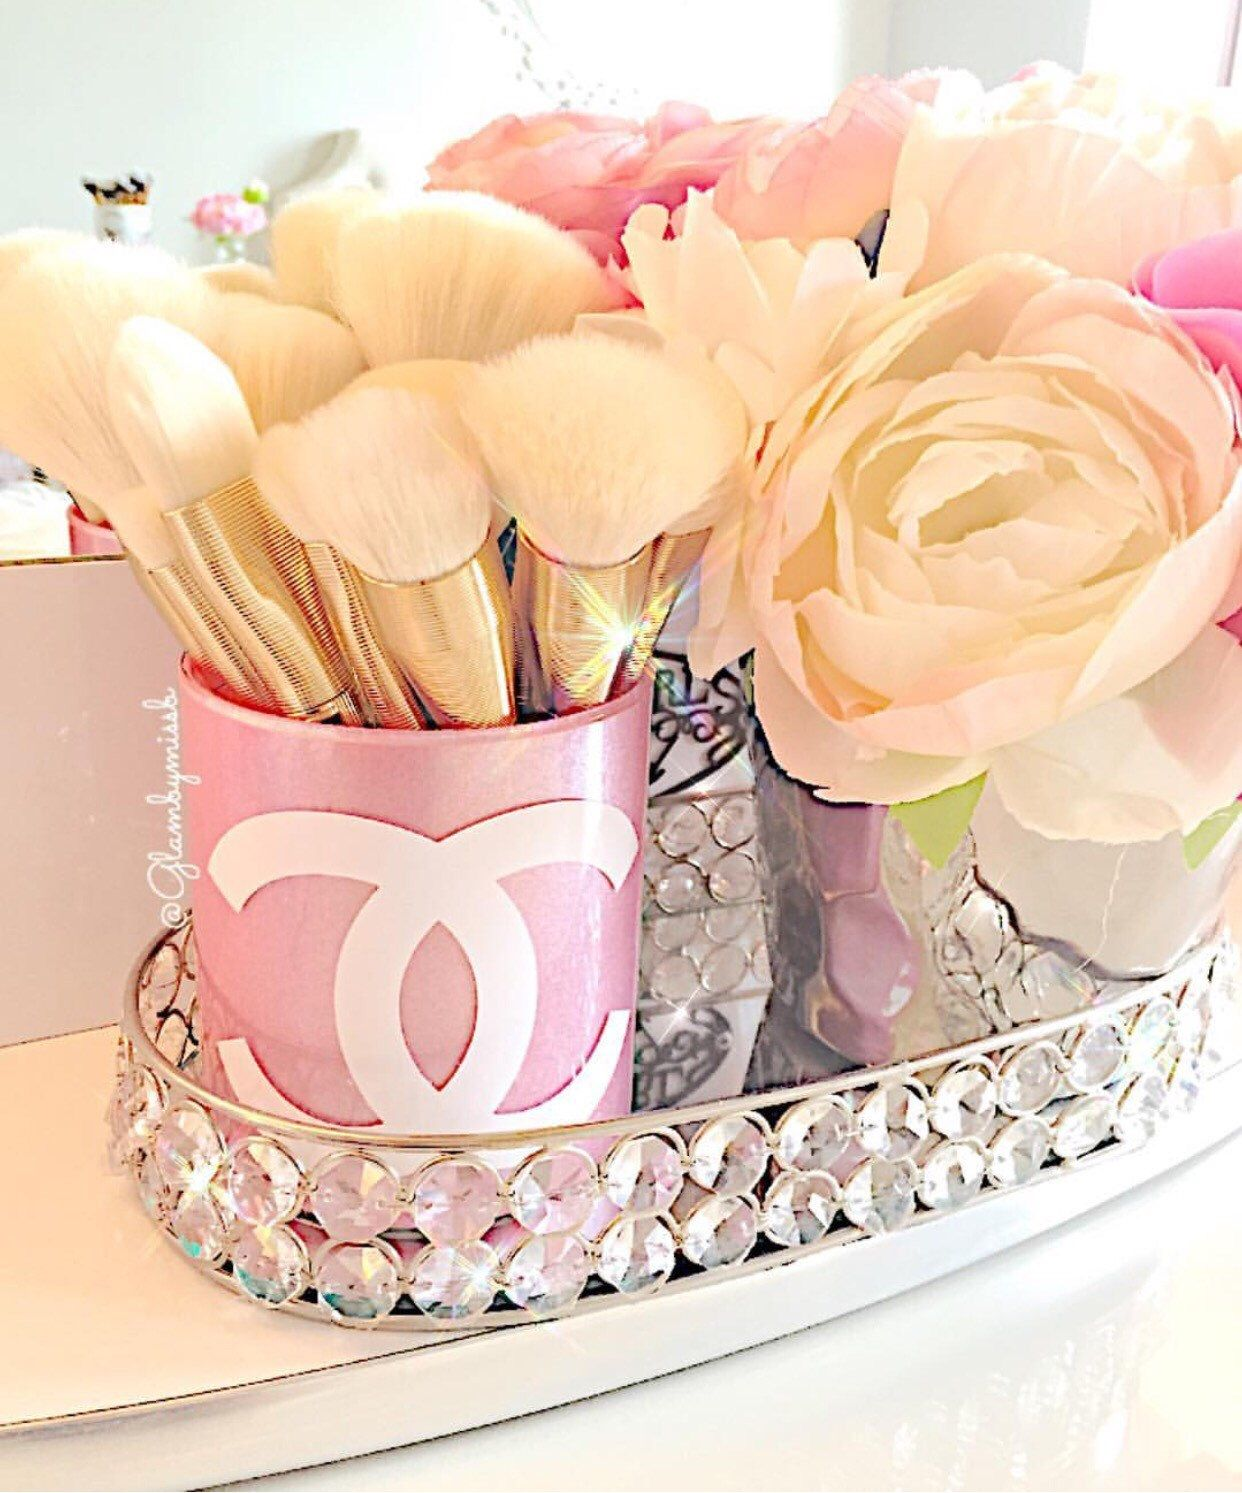 Chanel Inspired glass makeup brush holder by